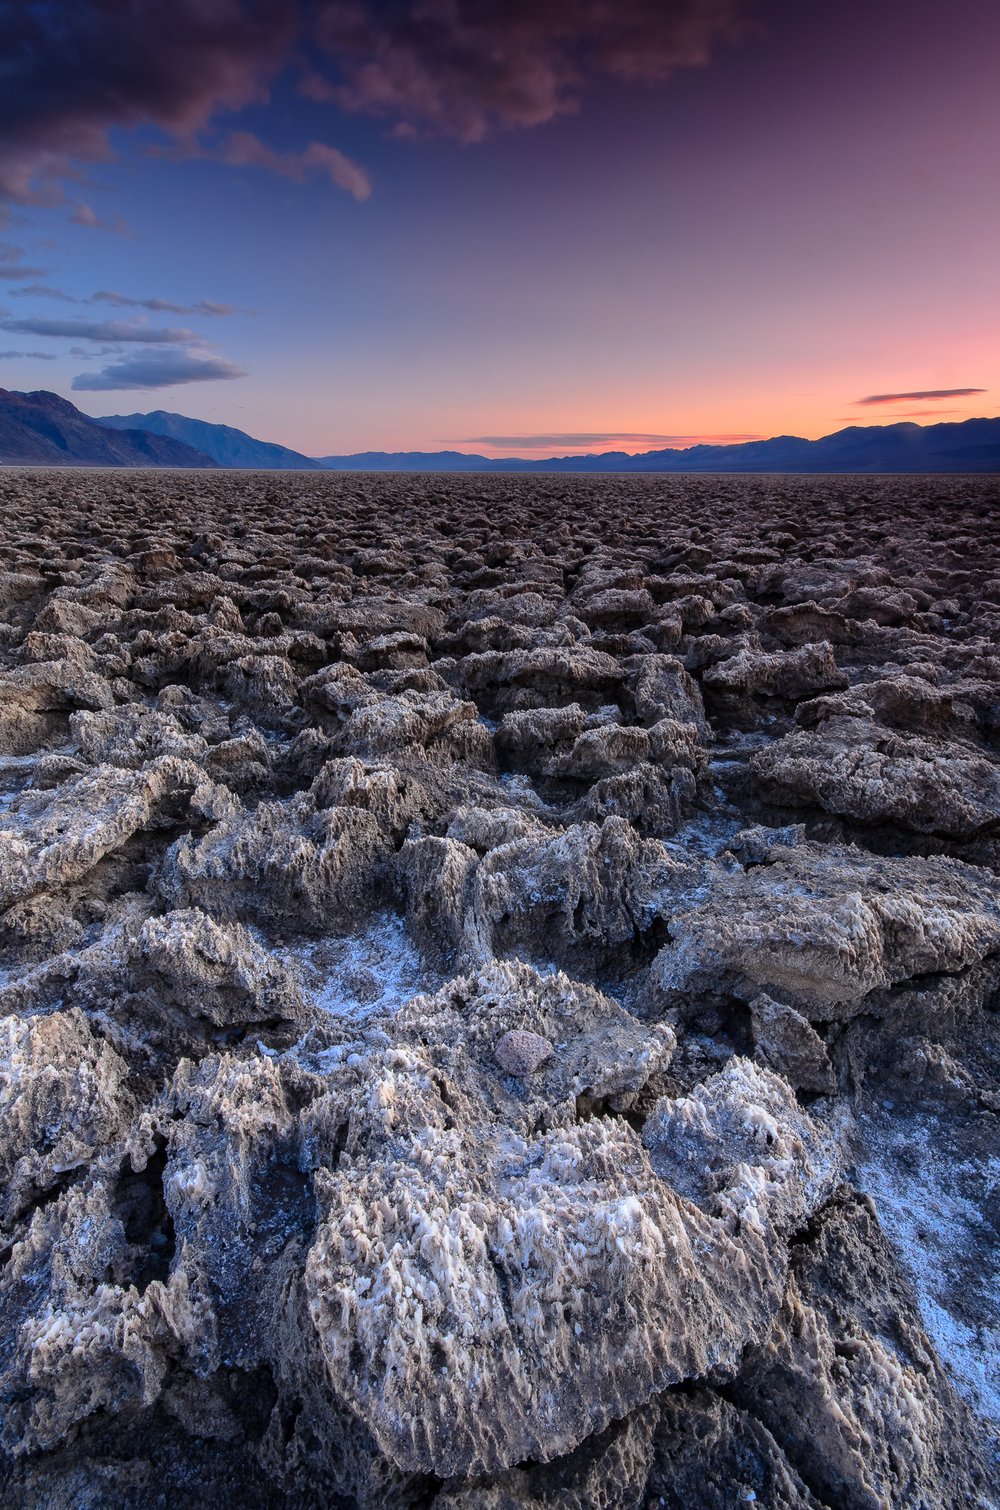 Twilight and blue hour take over and reveal the alien landscape of Devil's Golf Course in Death Valley, CA.